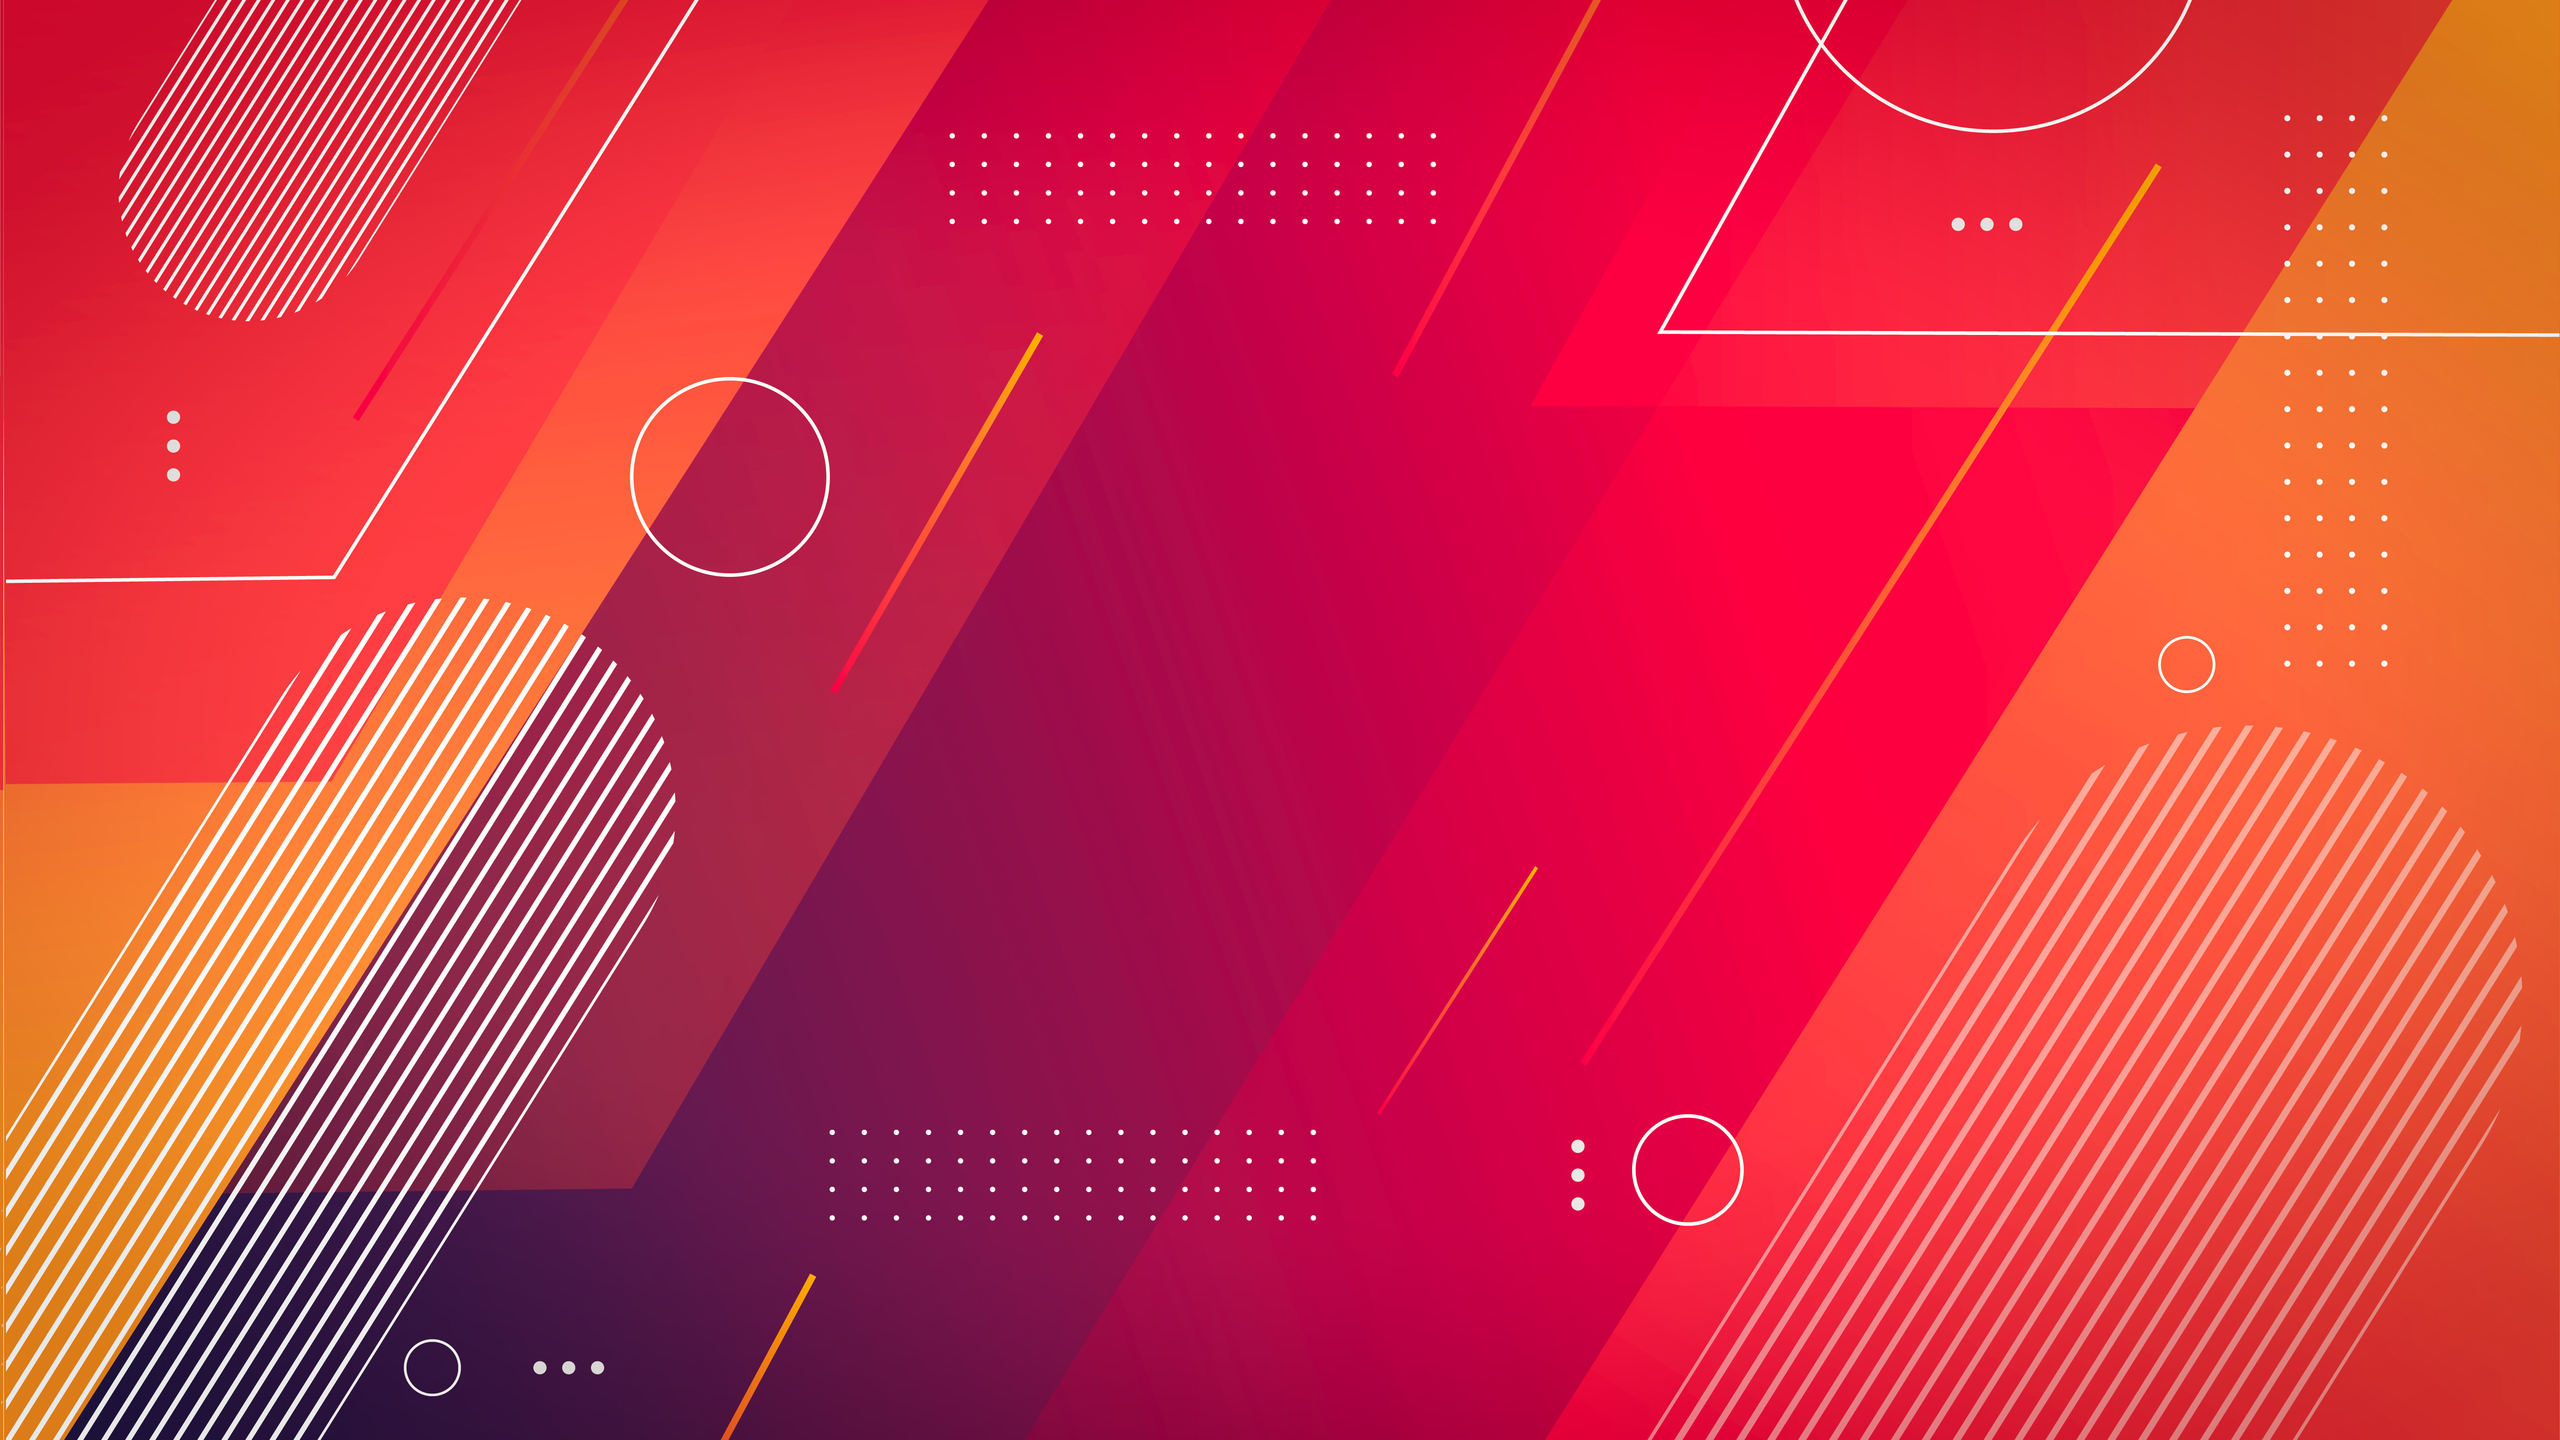 2560x1440 Minimal Abstract Background 5k 1440P Resolution HD